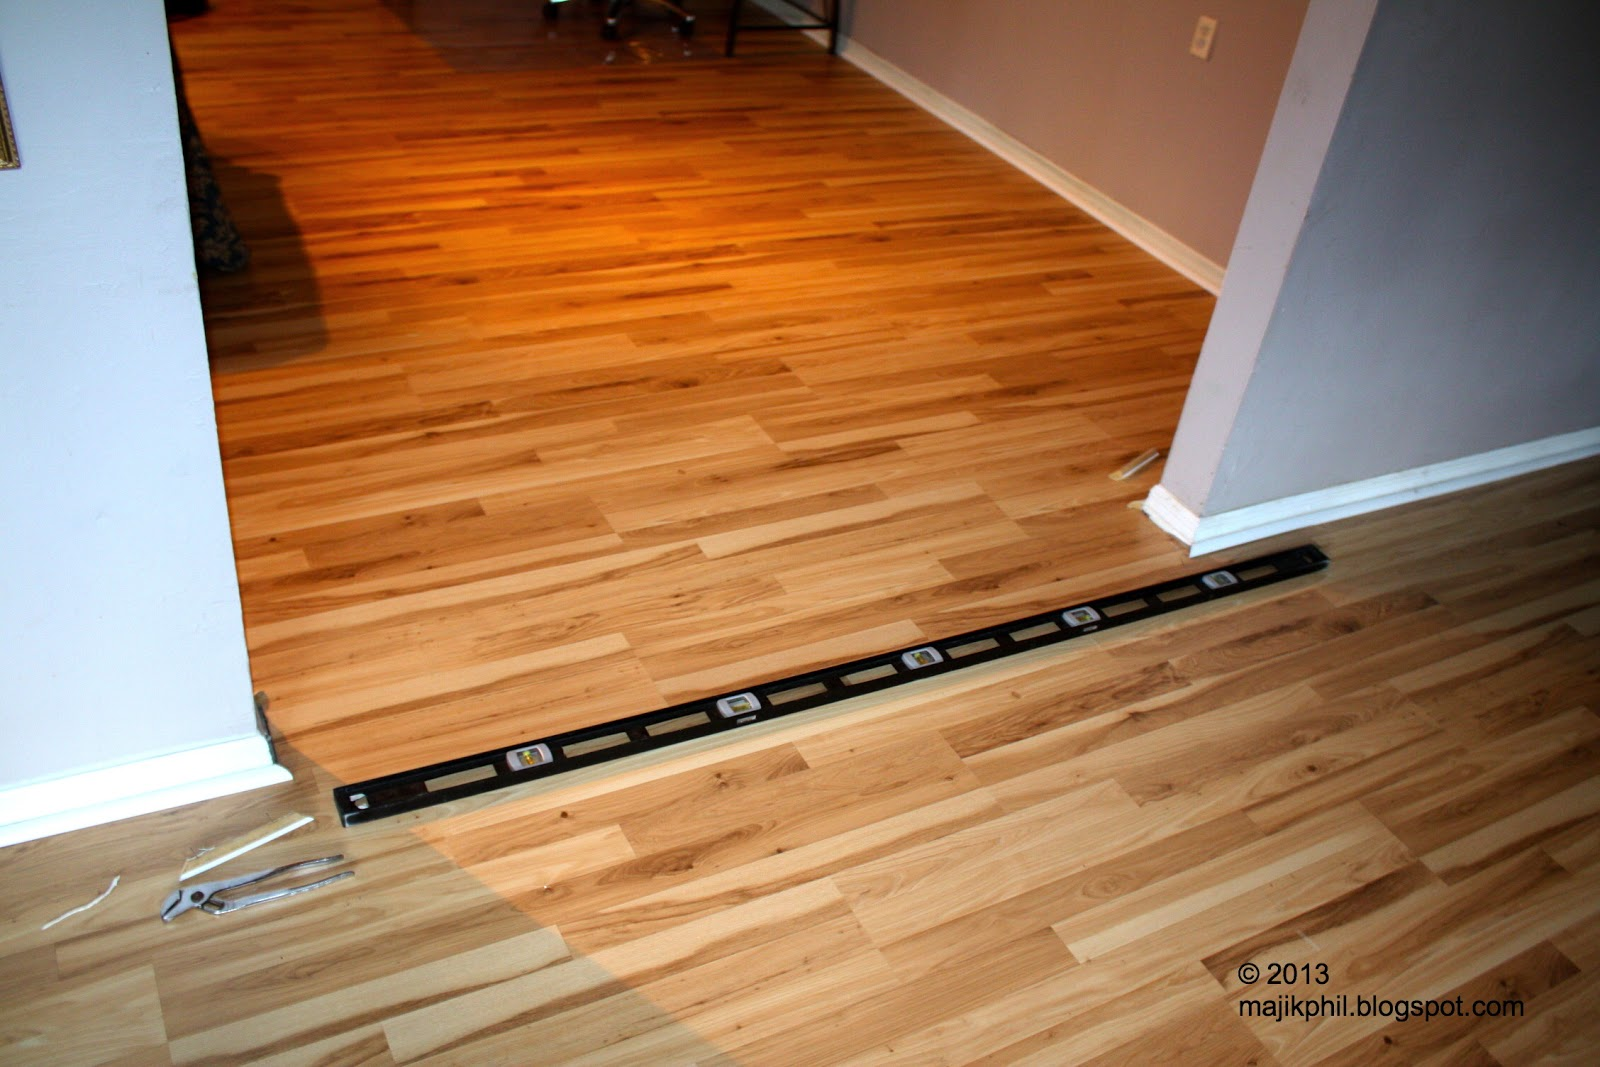 Laminate flooring put laminate flooring around fireplace for Floating laminate floor